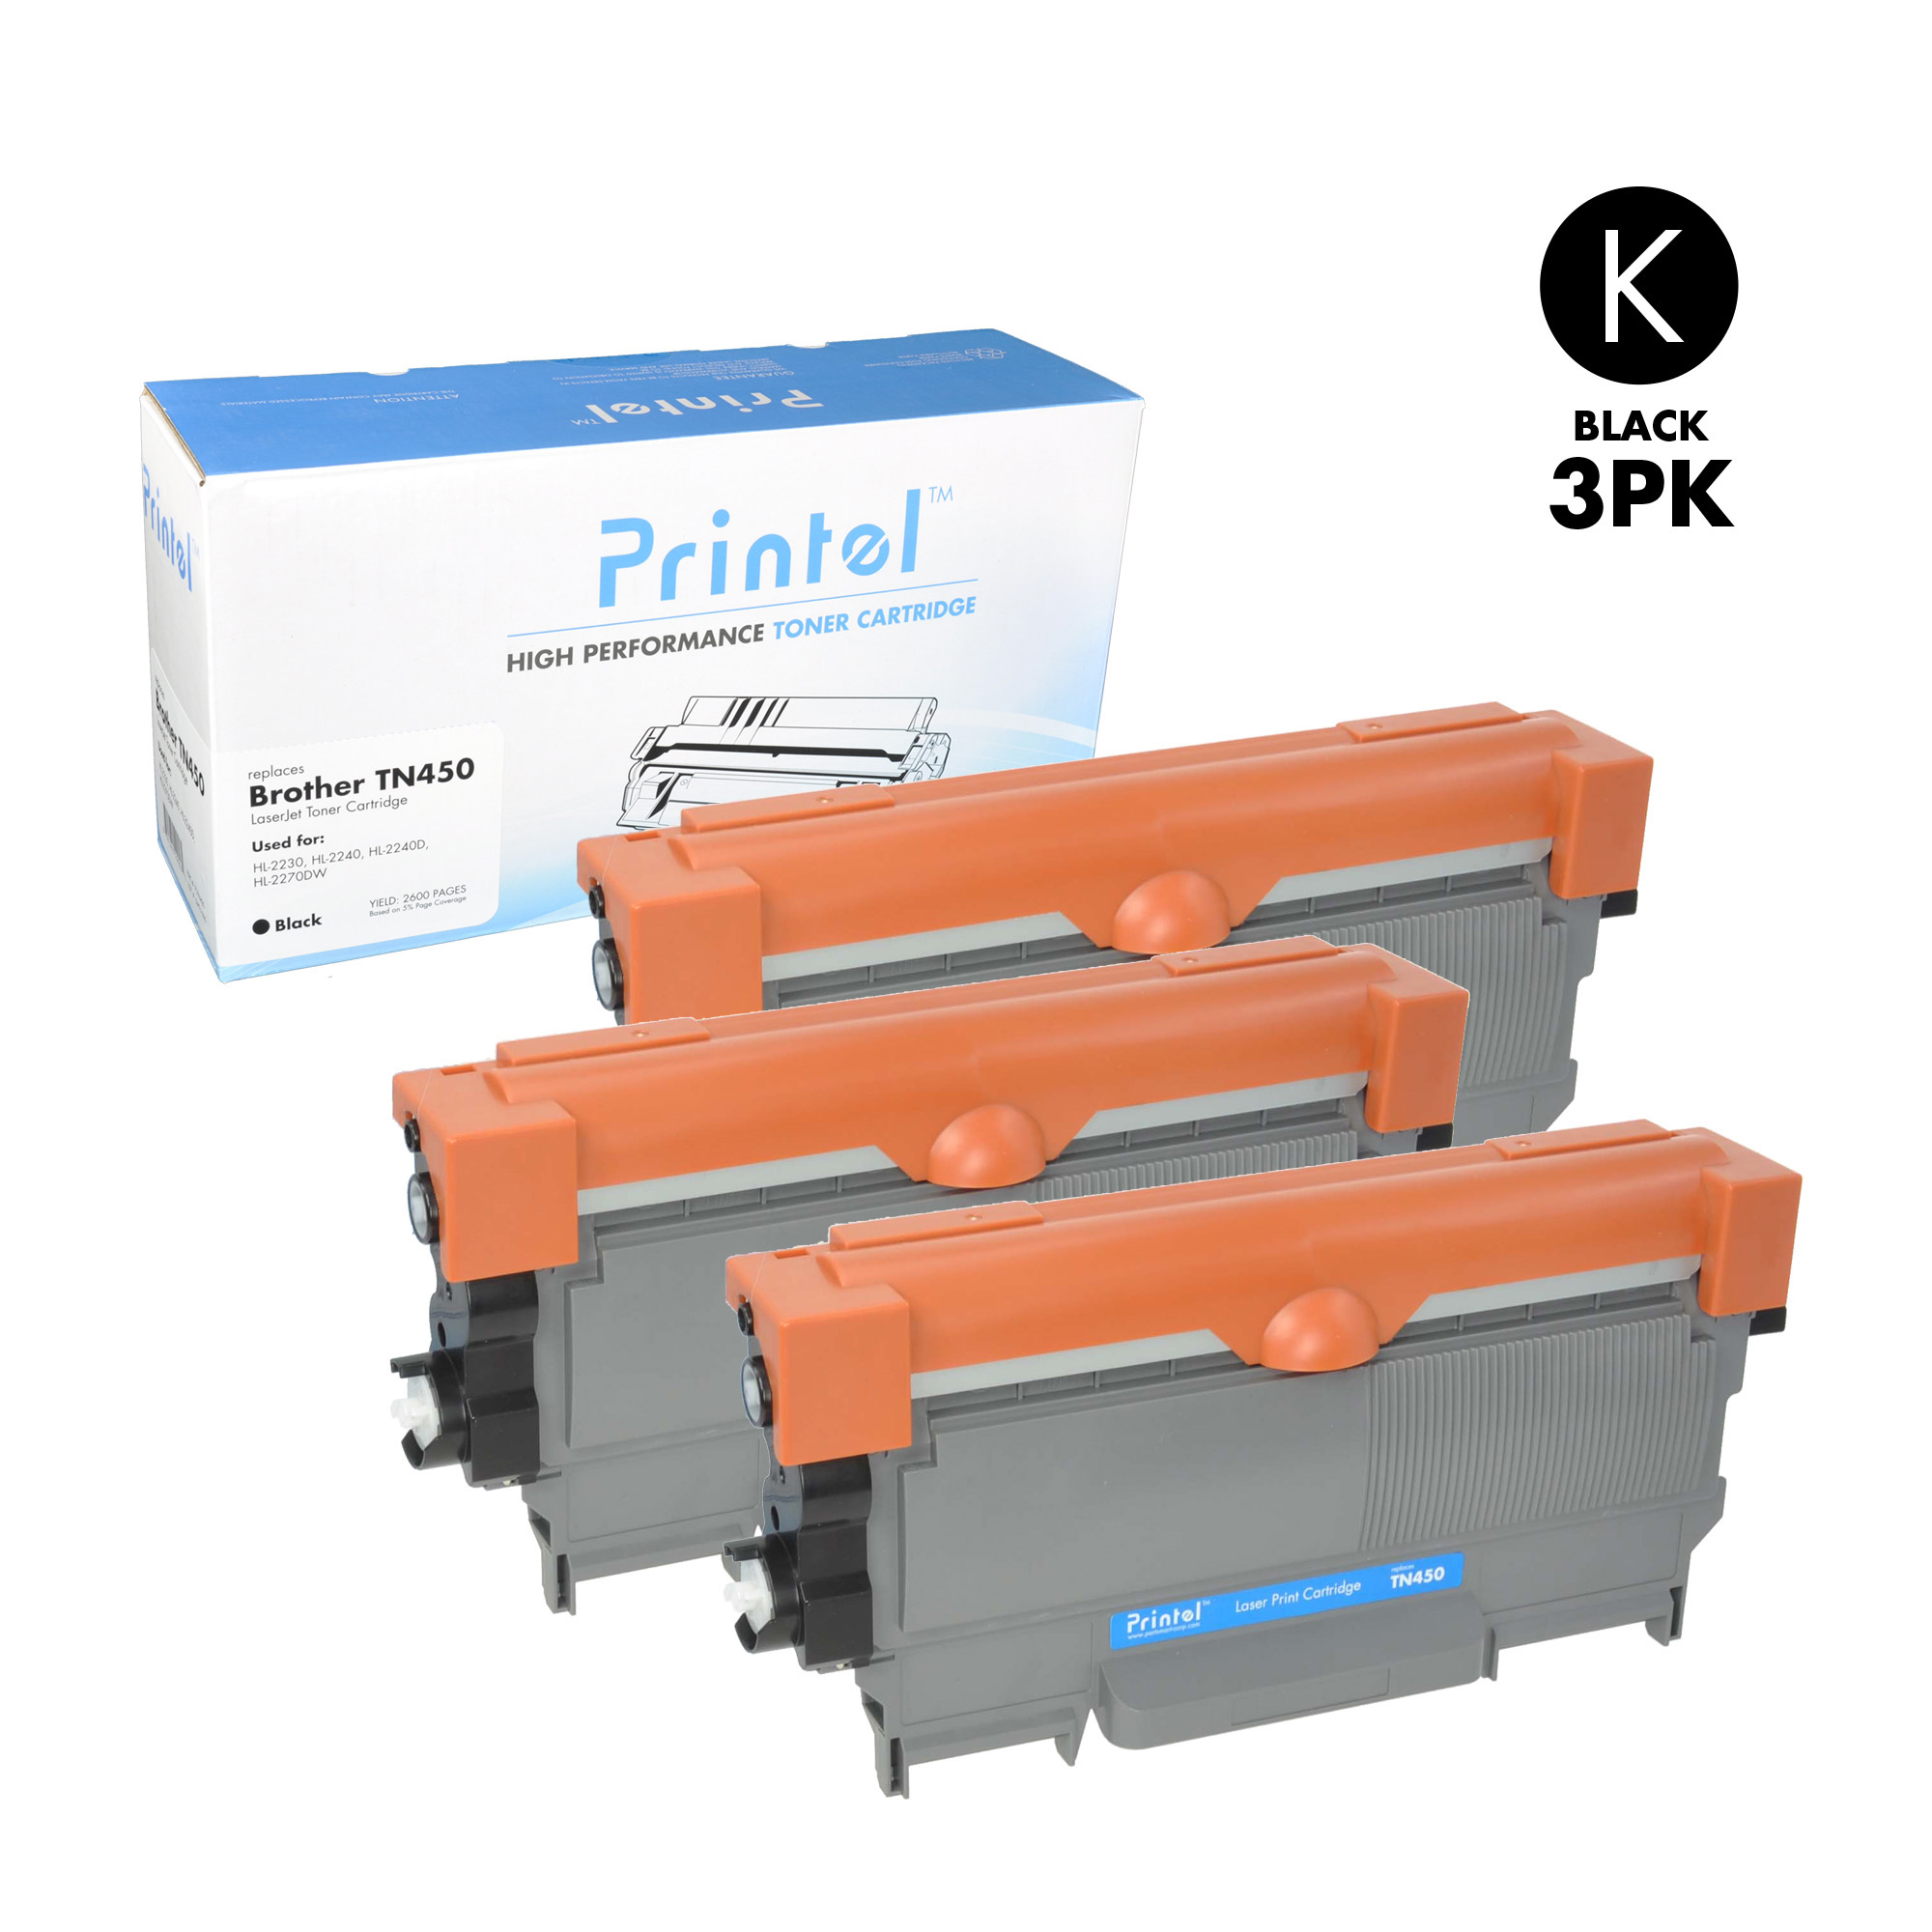 Brother TN420 3 Pack Toner Cartridge used with Brother DCP-7060, Brother DCP-7065, Brother HL-2220, Brother HL-2240